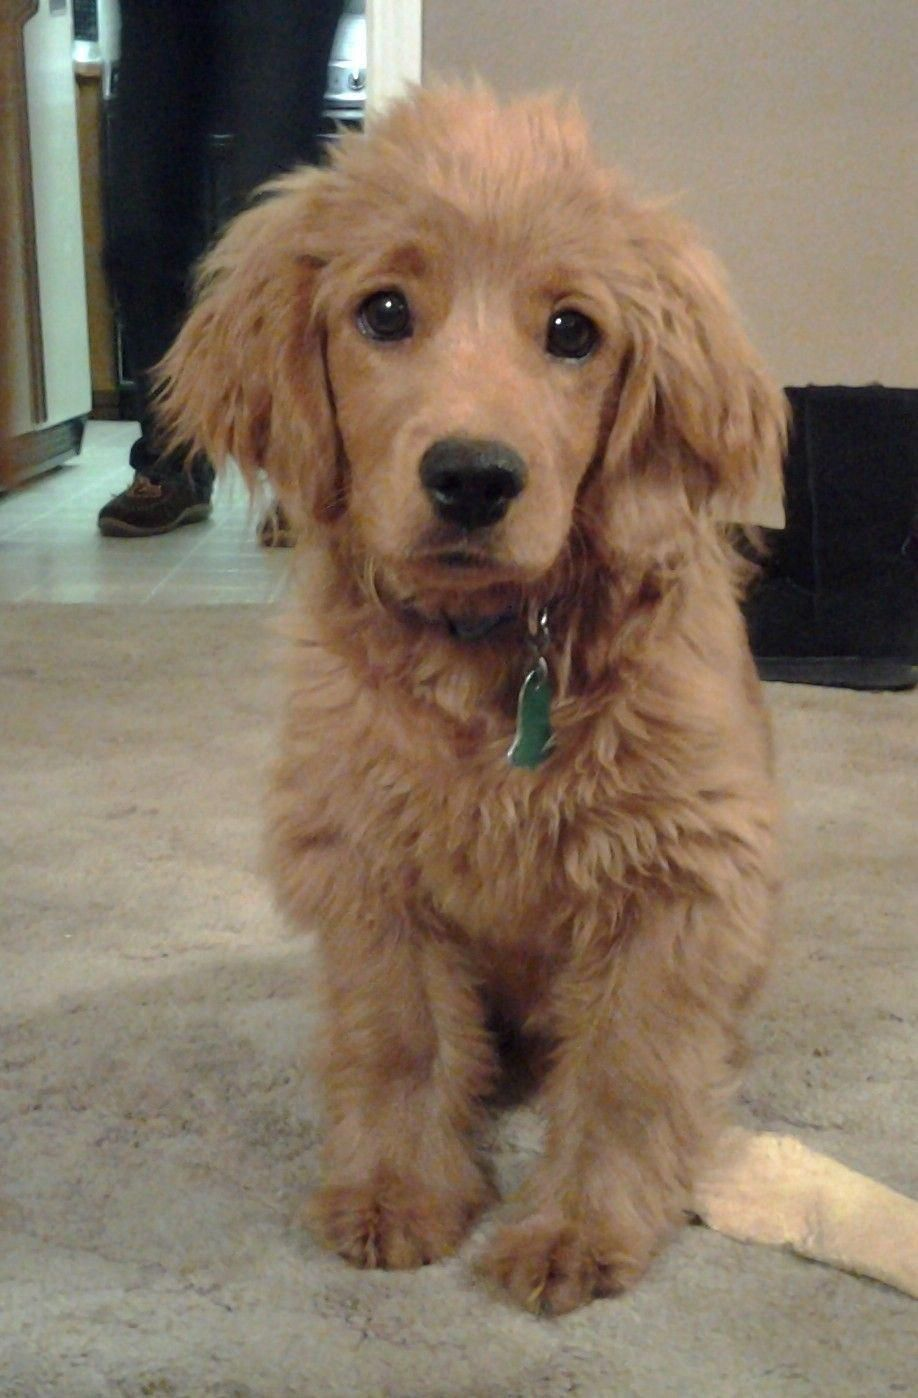 Poodles are generally seen in movies, as the family pet of